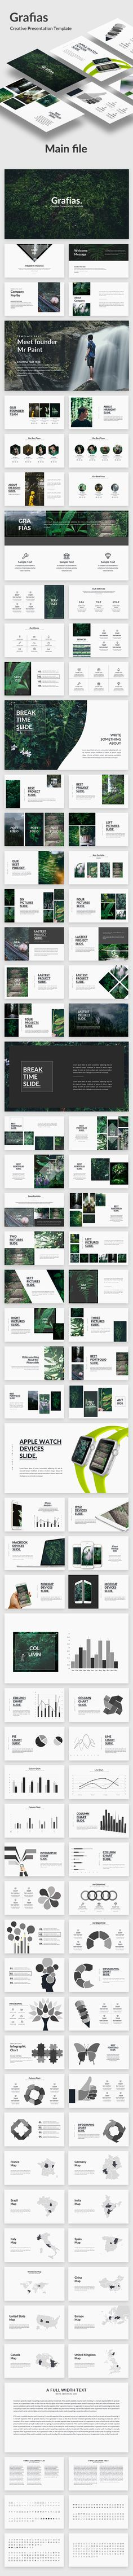 Grafias  Creative Keynote Template — Keynote KEY #creative #fashion • Download ➝ https://graphicriver.net/item/grafias-creative-keynote-template/19771991?ref=pxcr